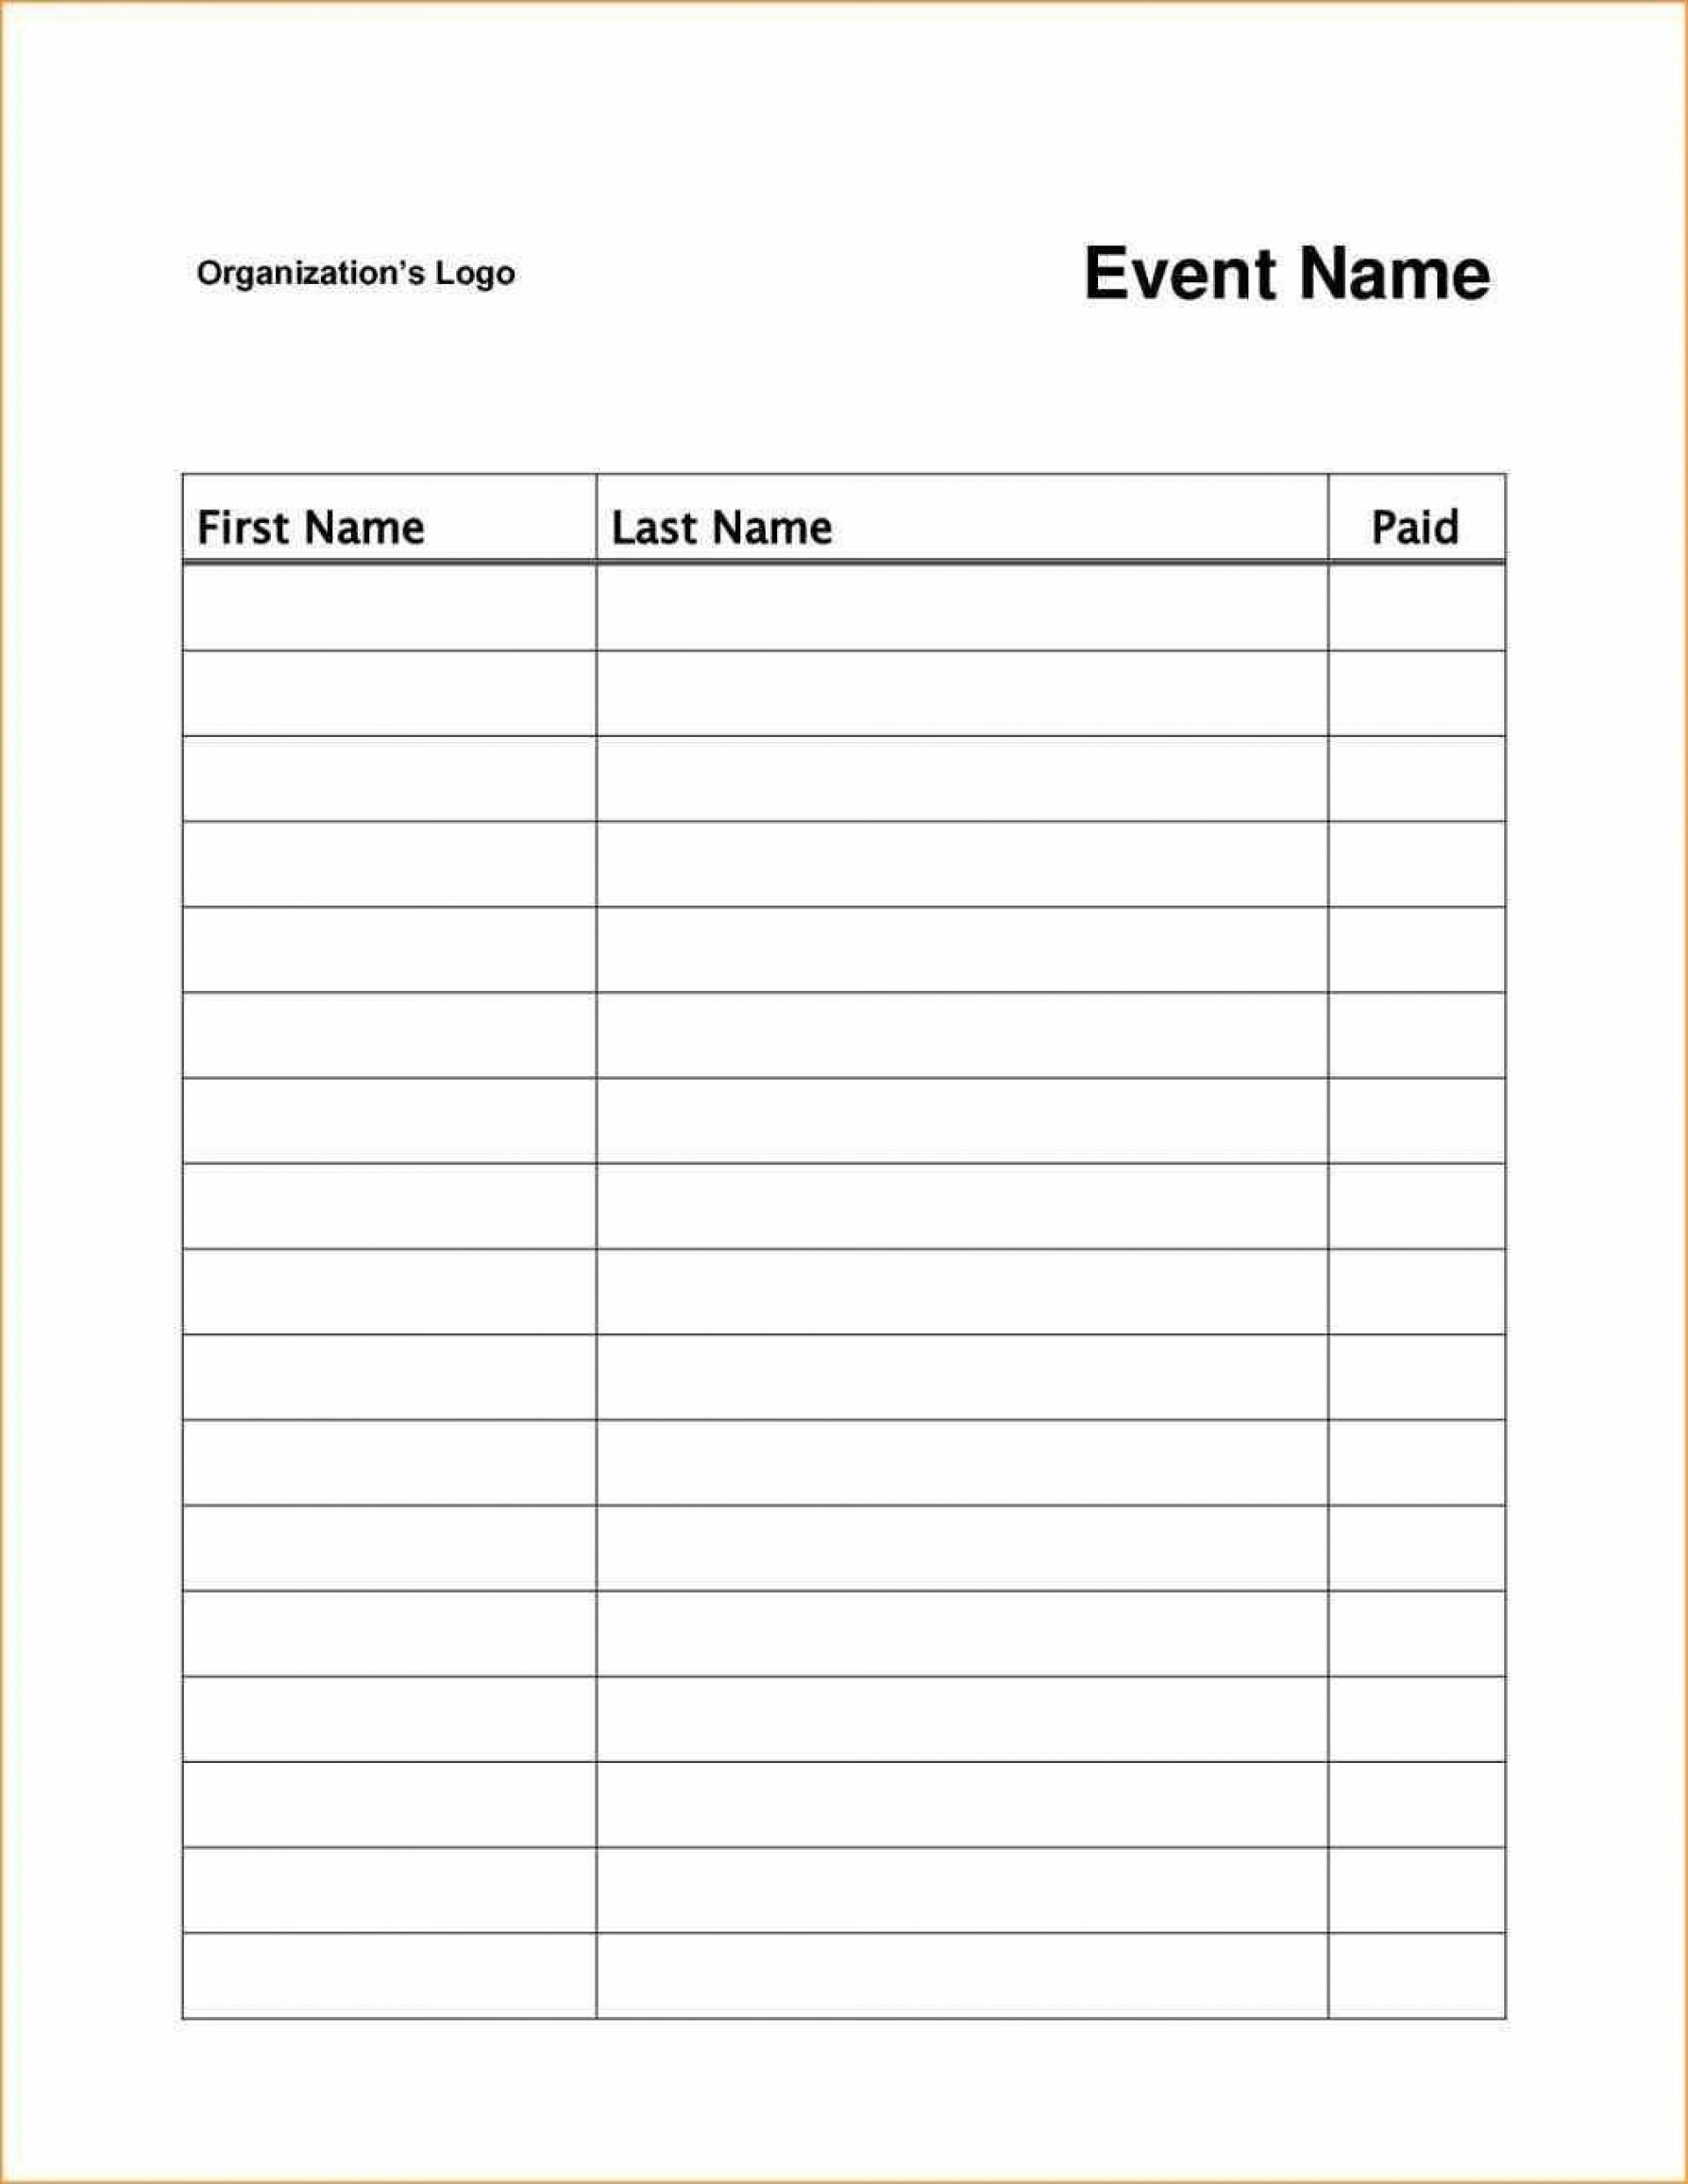 Sign Up Sheet Template Pdf from www.addictionary.org